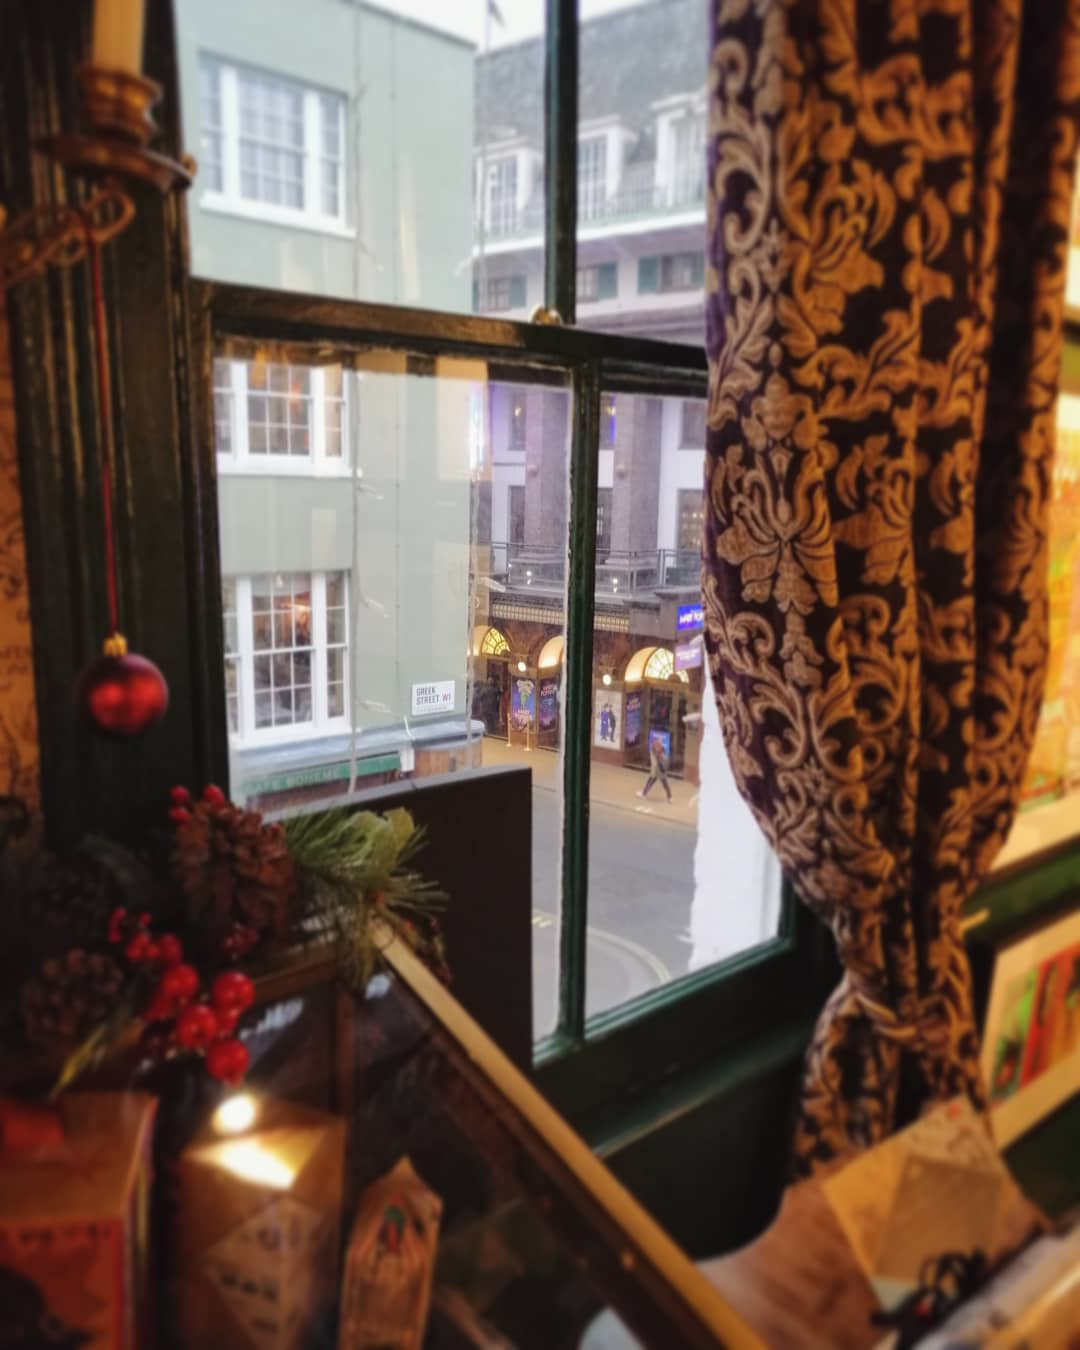 The view of Soho's streets from House of MinaLima makes the visitor feel like they stepped into a hidden, magical world.